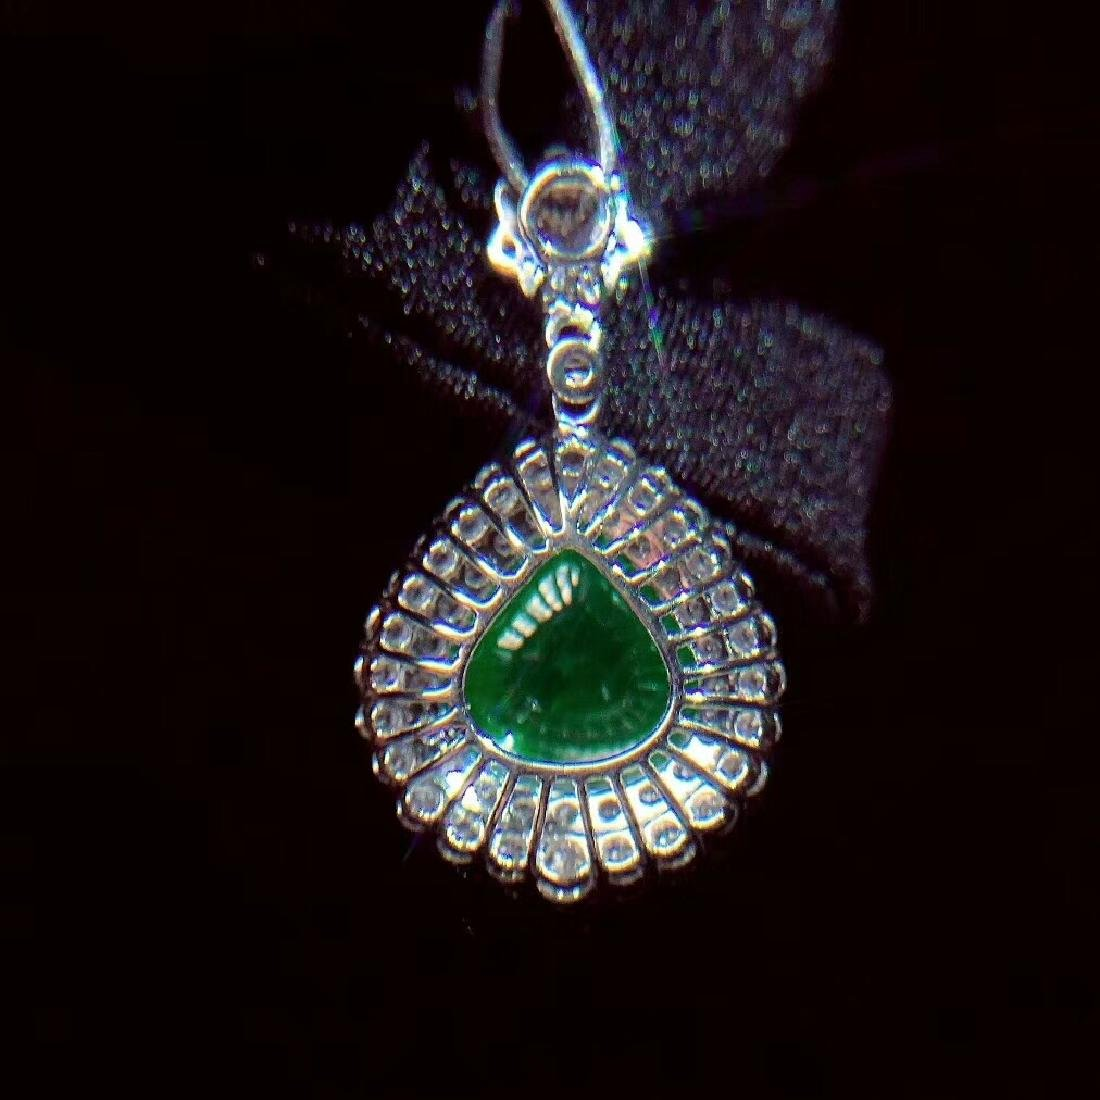 6.1ct Emerald Pendant in 18kt White Gold - 6